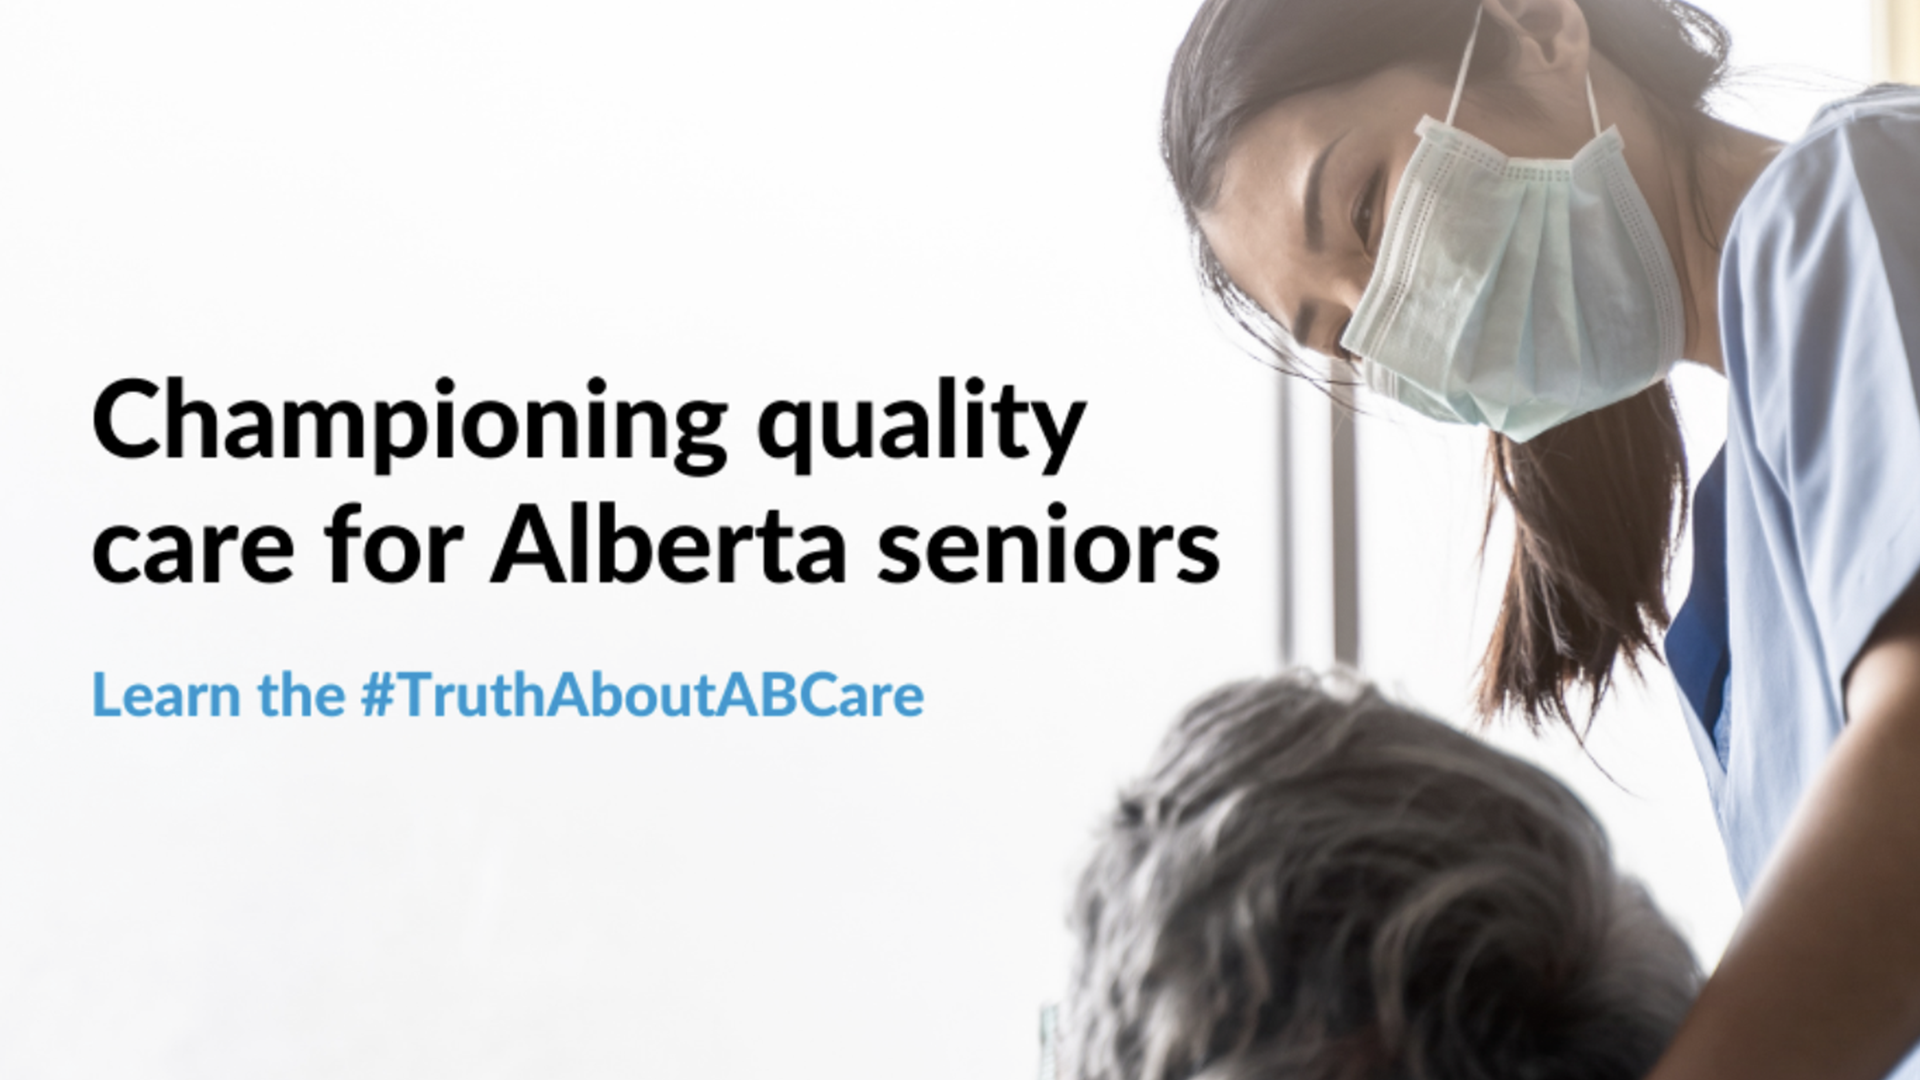 ACCA: The Truth About Alberta Care